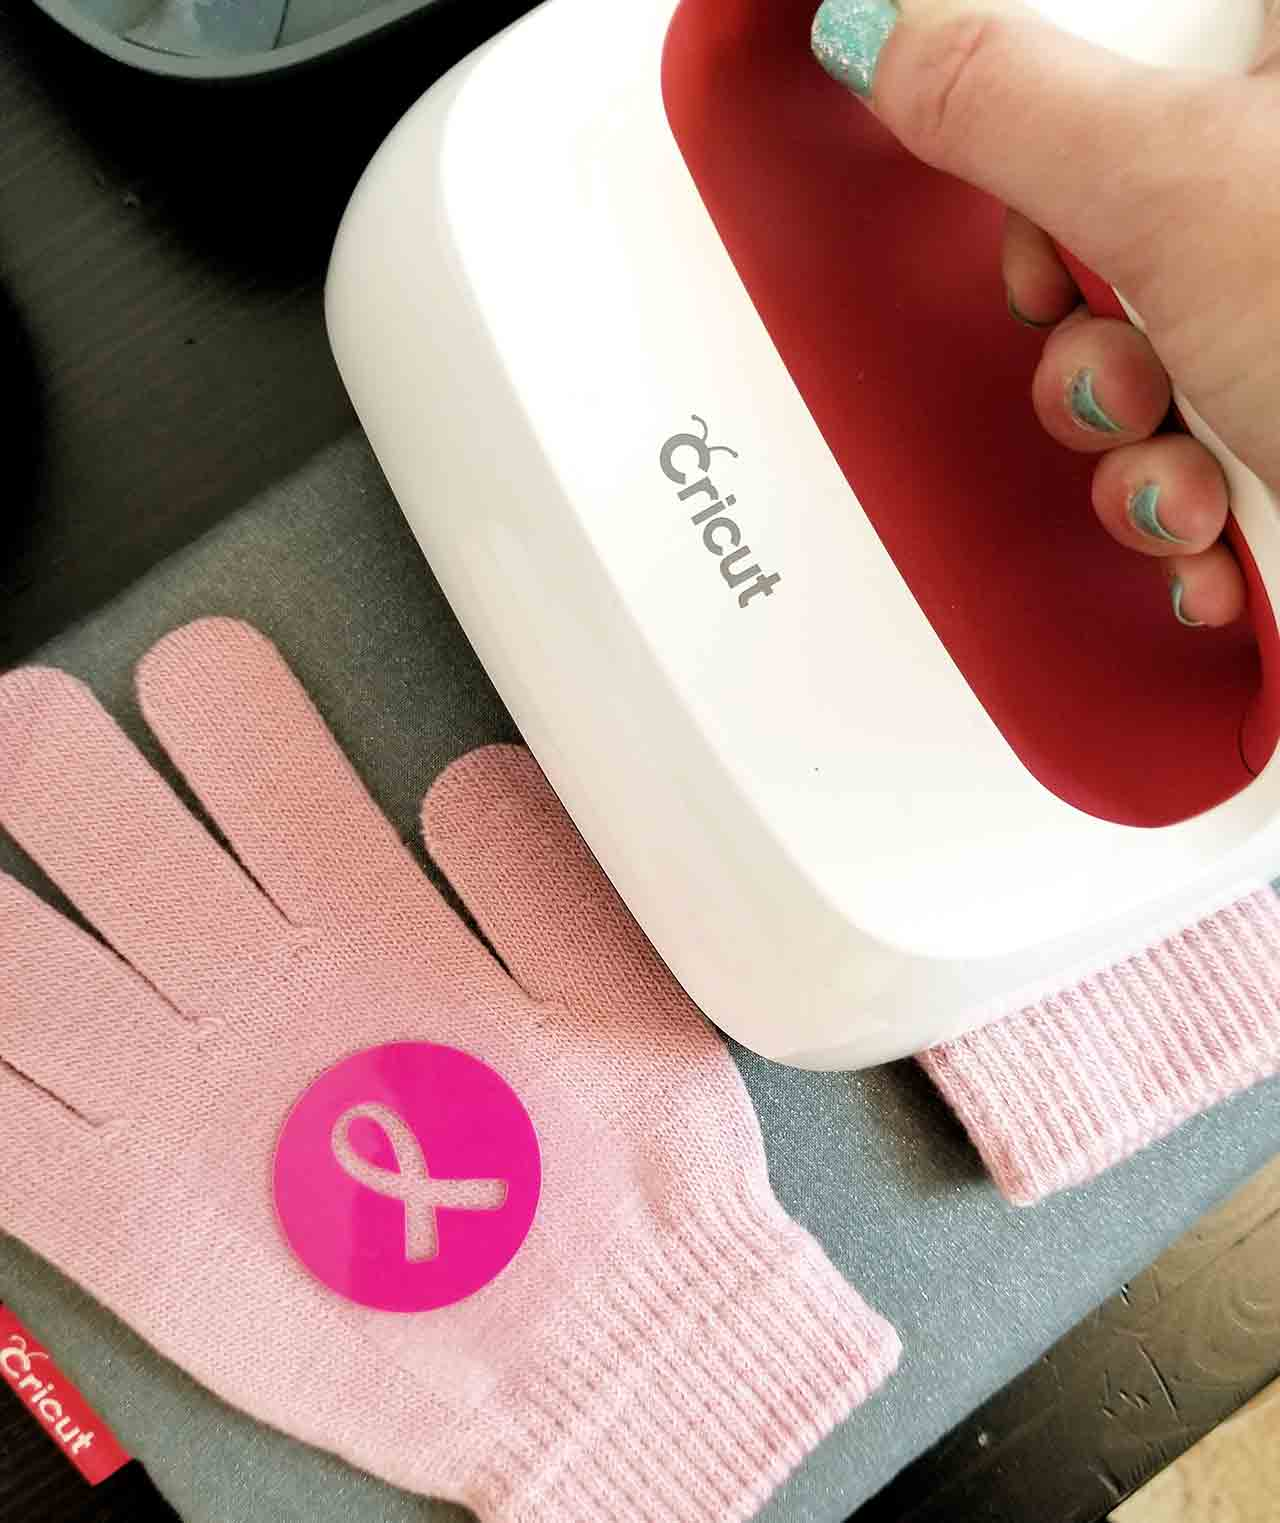 Breast Cancer Run Gift Bags with Cricut - Crafting in the Rain